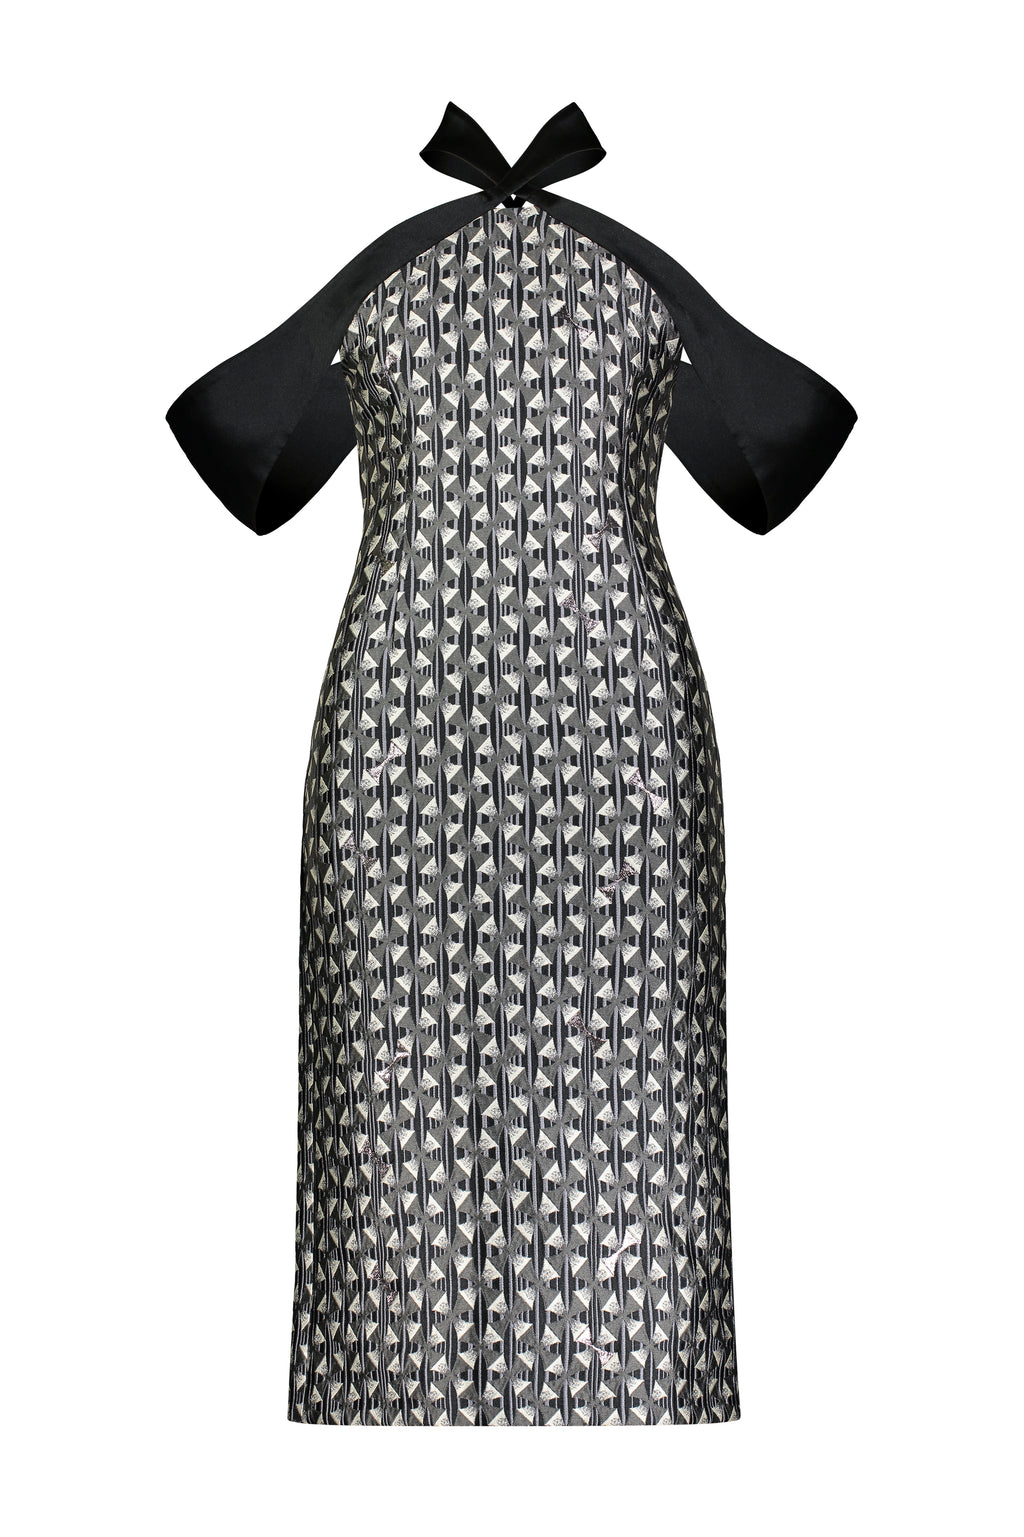 Washington Roberts Kite Dress - Edo Dancer Geometric print - Alter Neck Dress